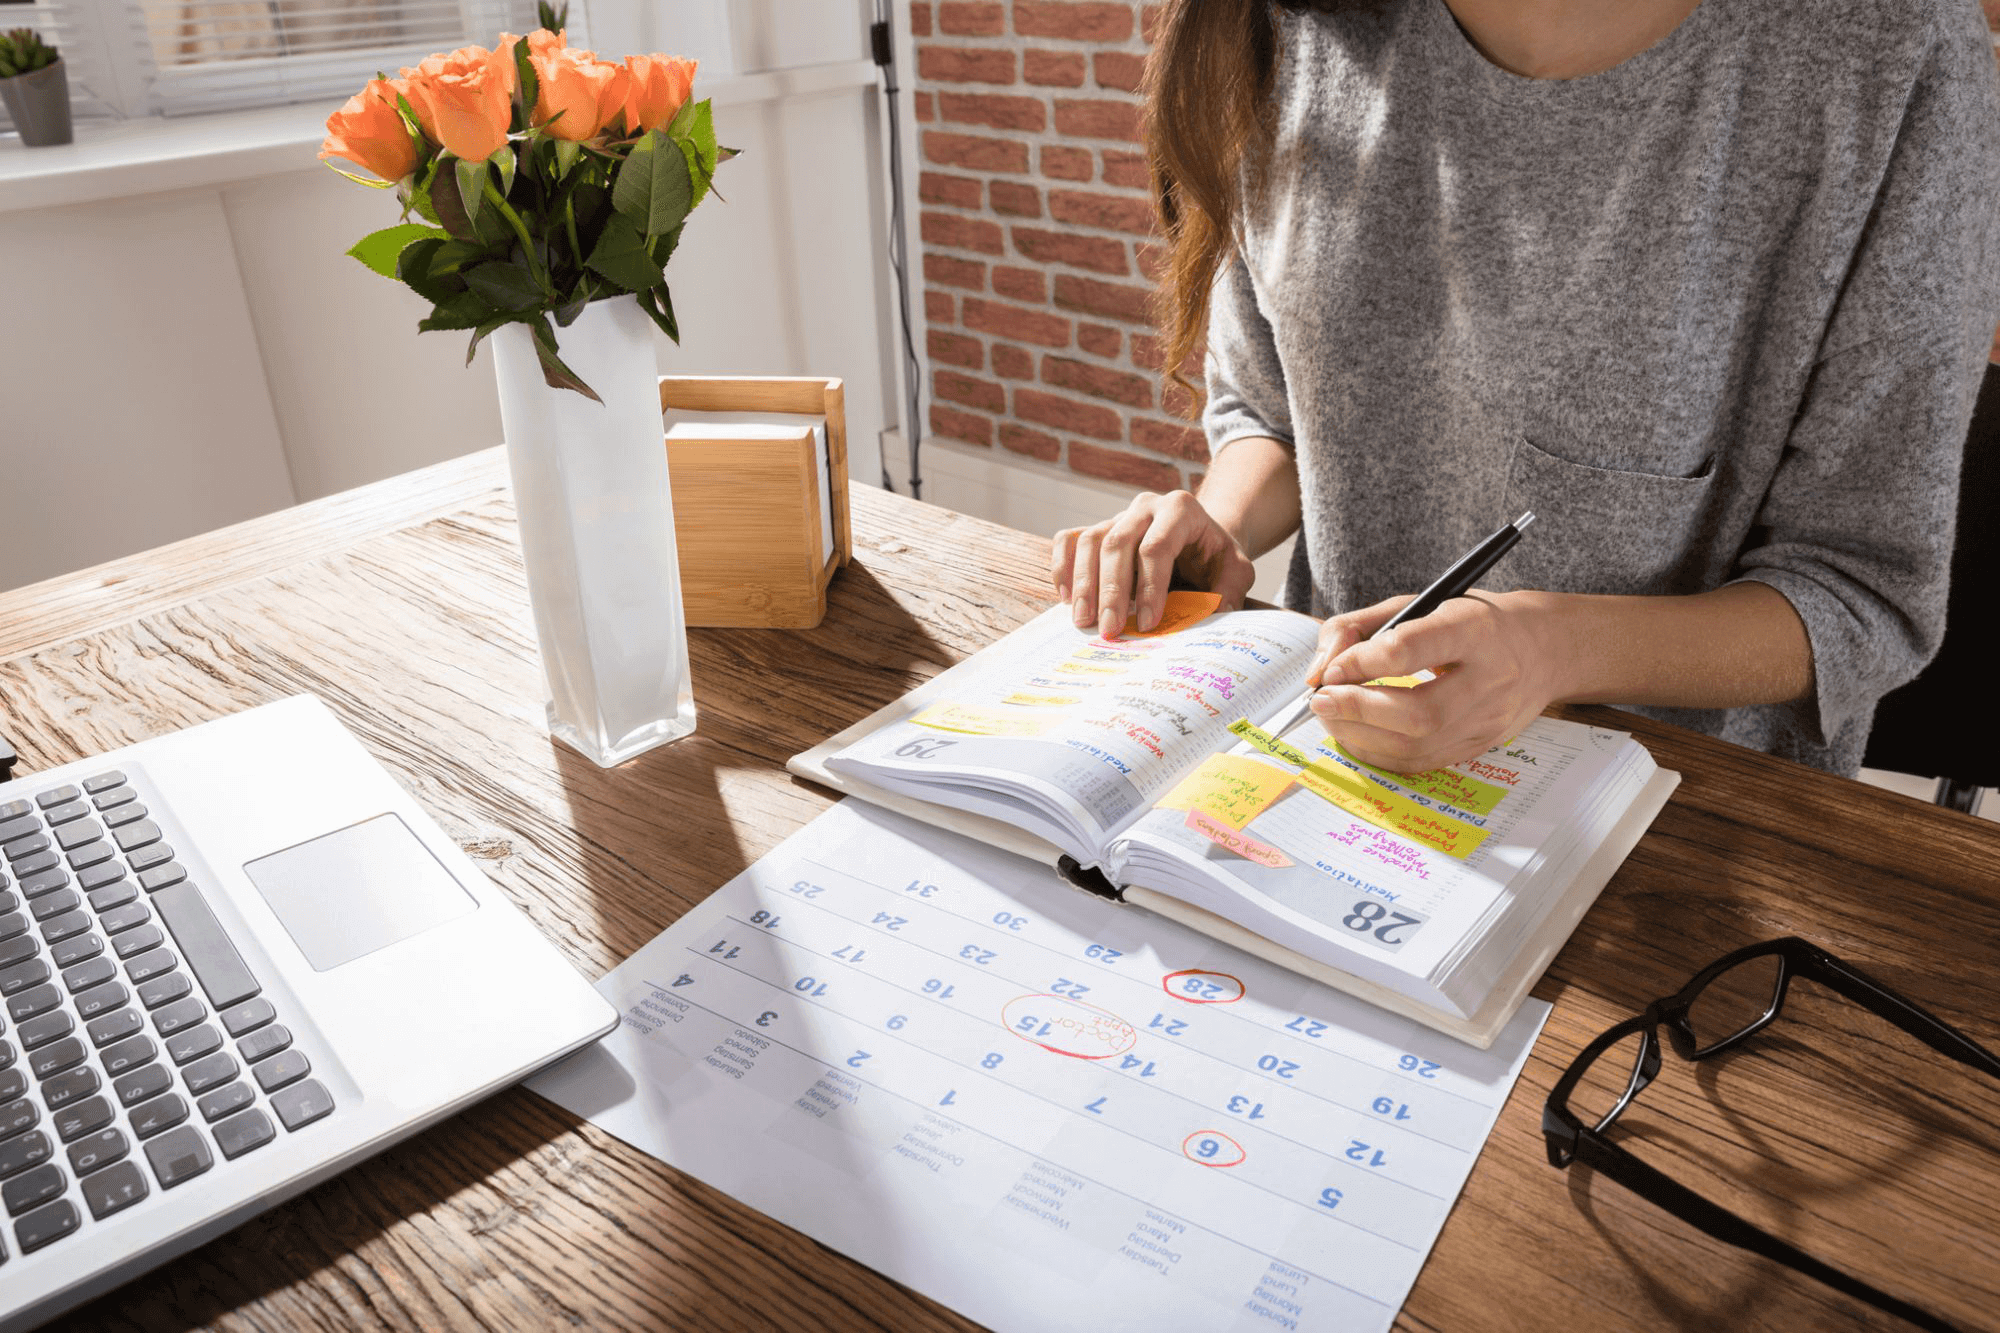 Make a schedule and work